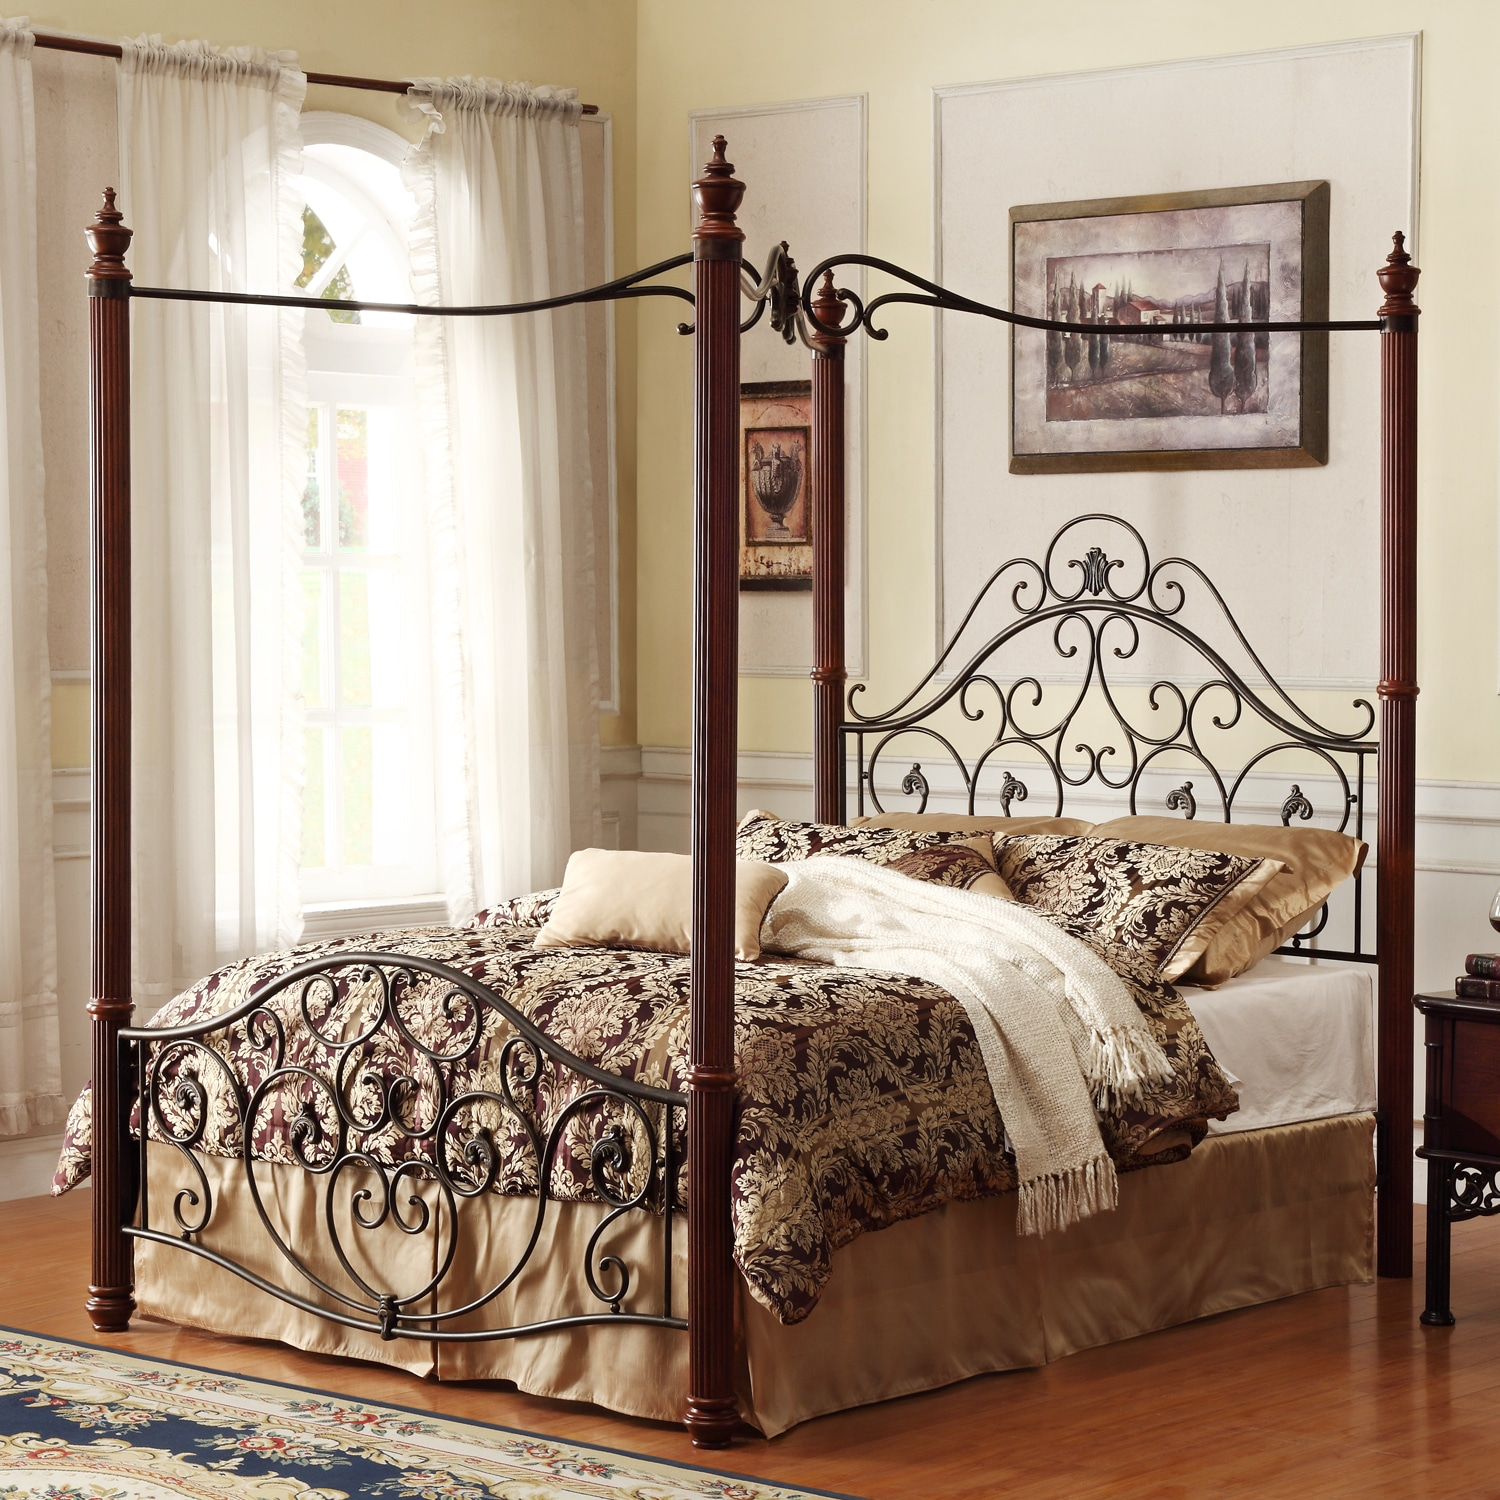 Napa queen size black canopy bed free shipping today overstock com - Madera Deco Full Size Canopy Metal Bed